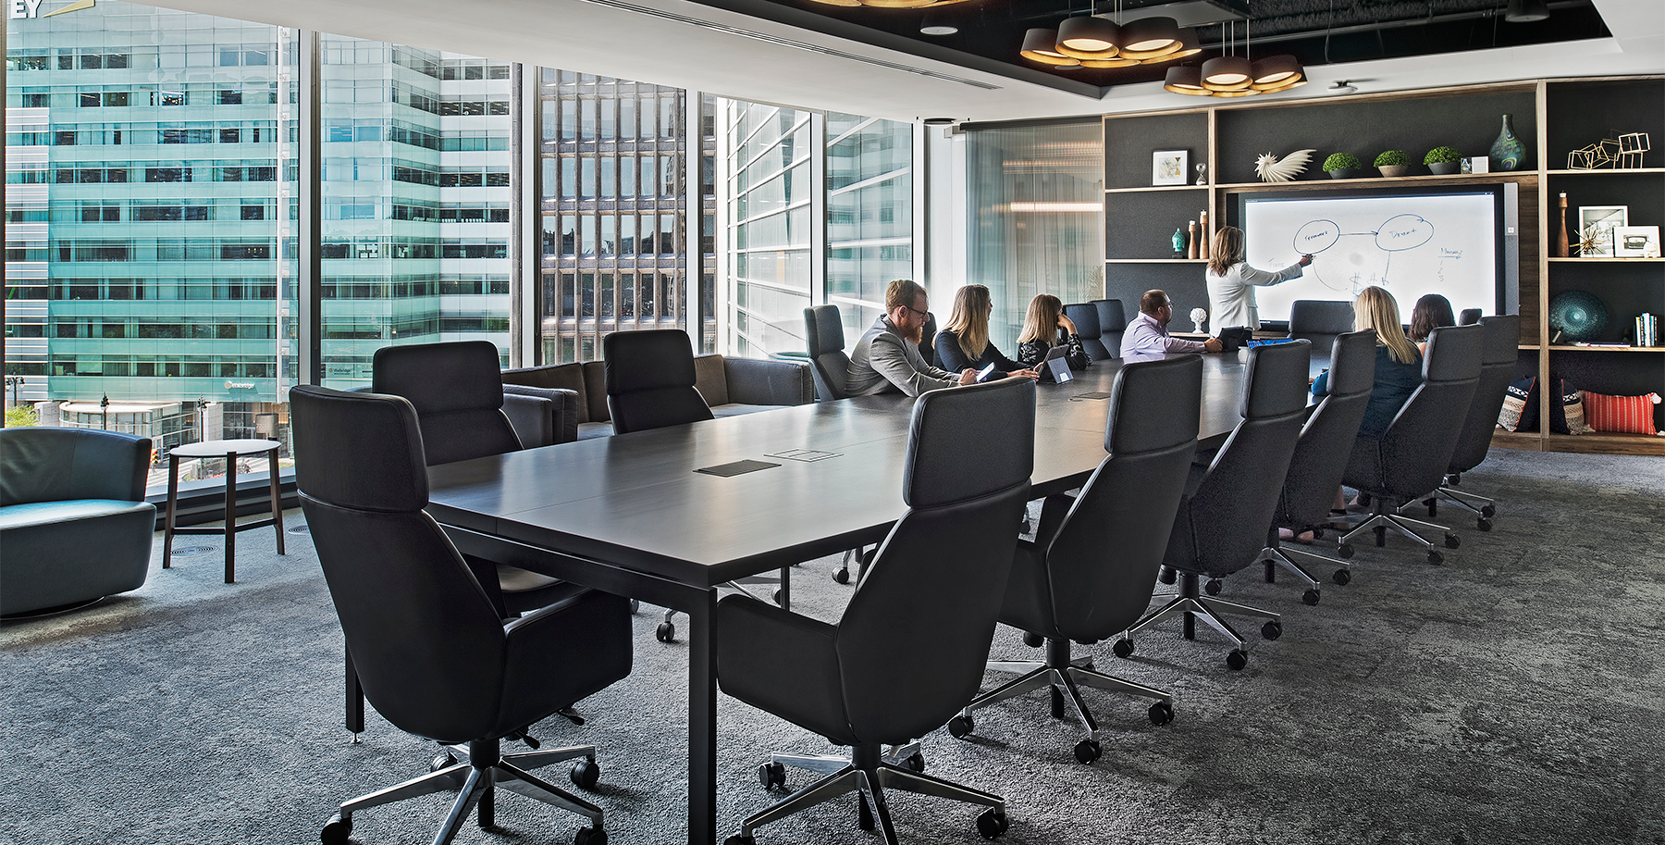 Microsoft-Technology-Center-Conference-Room-1665x845